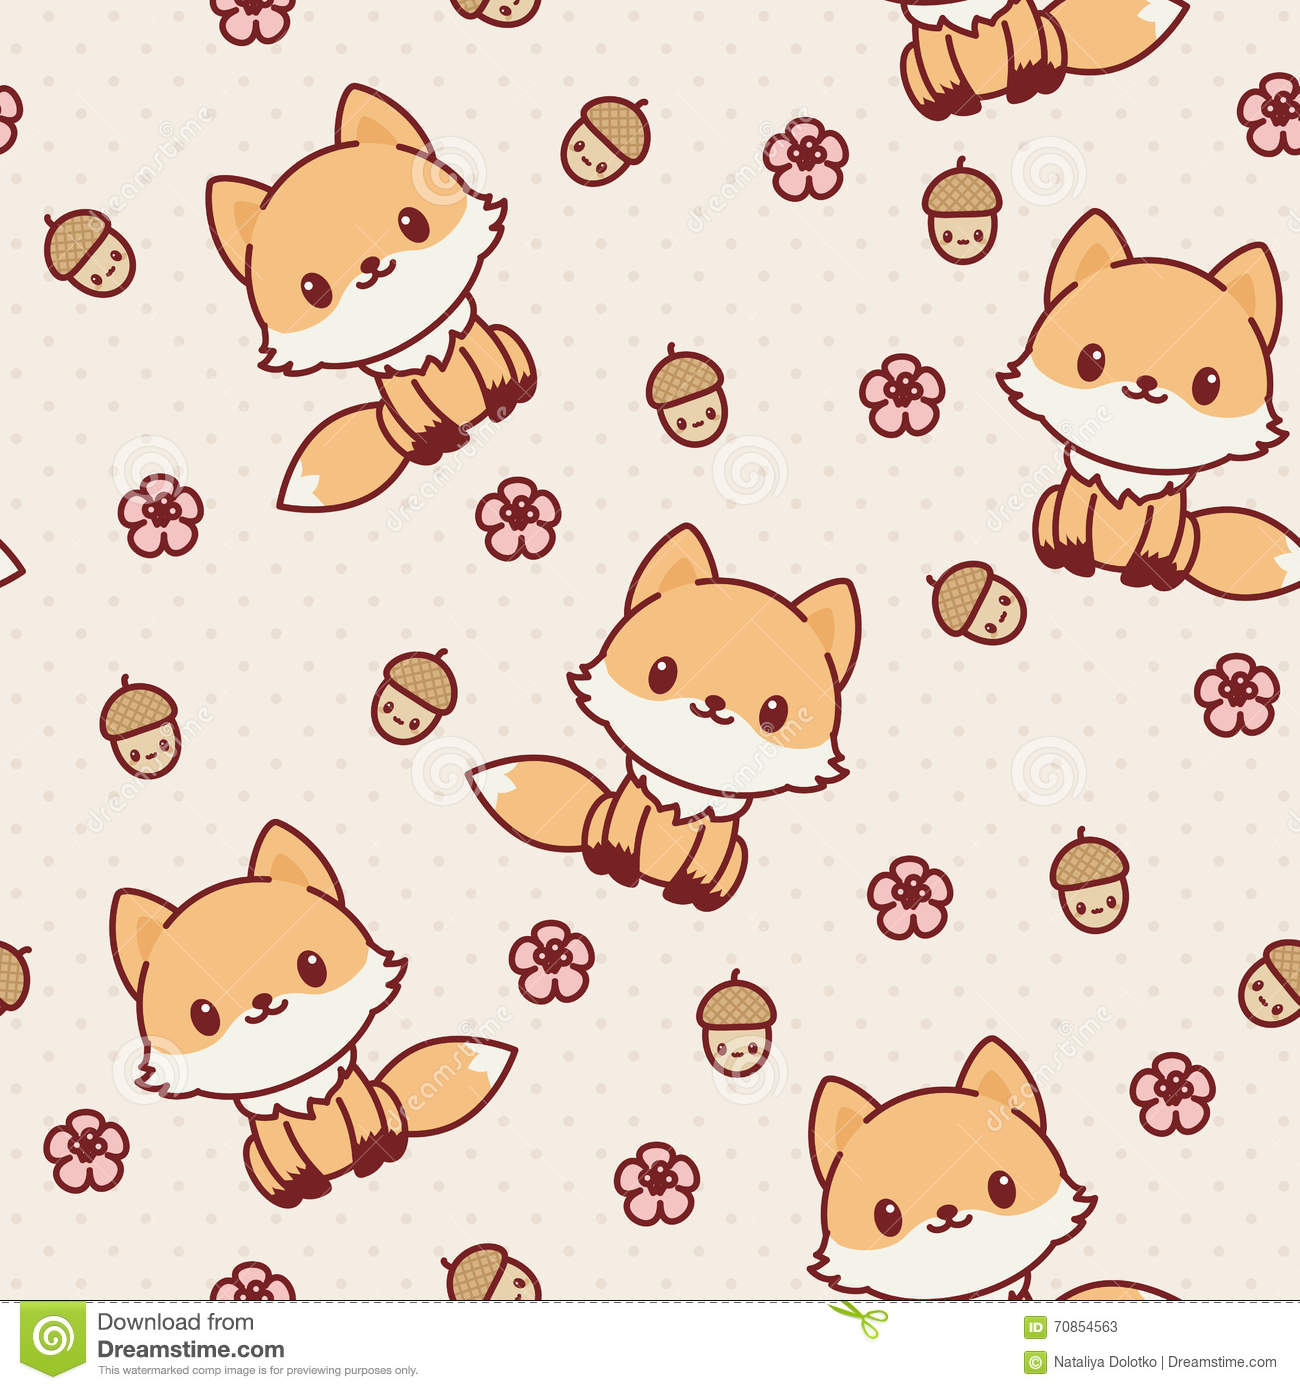 Kawaii Fox Seamless Wallpaper. Stock Vector - Image: 70854563